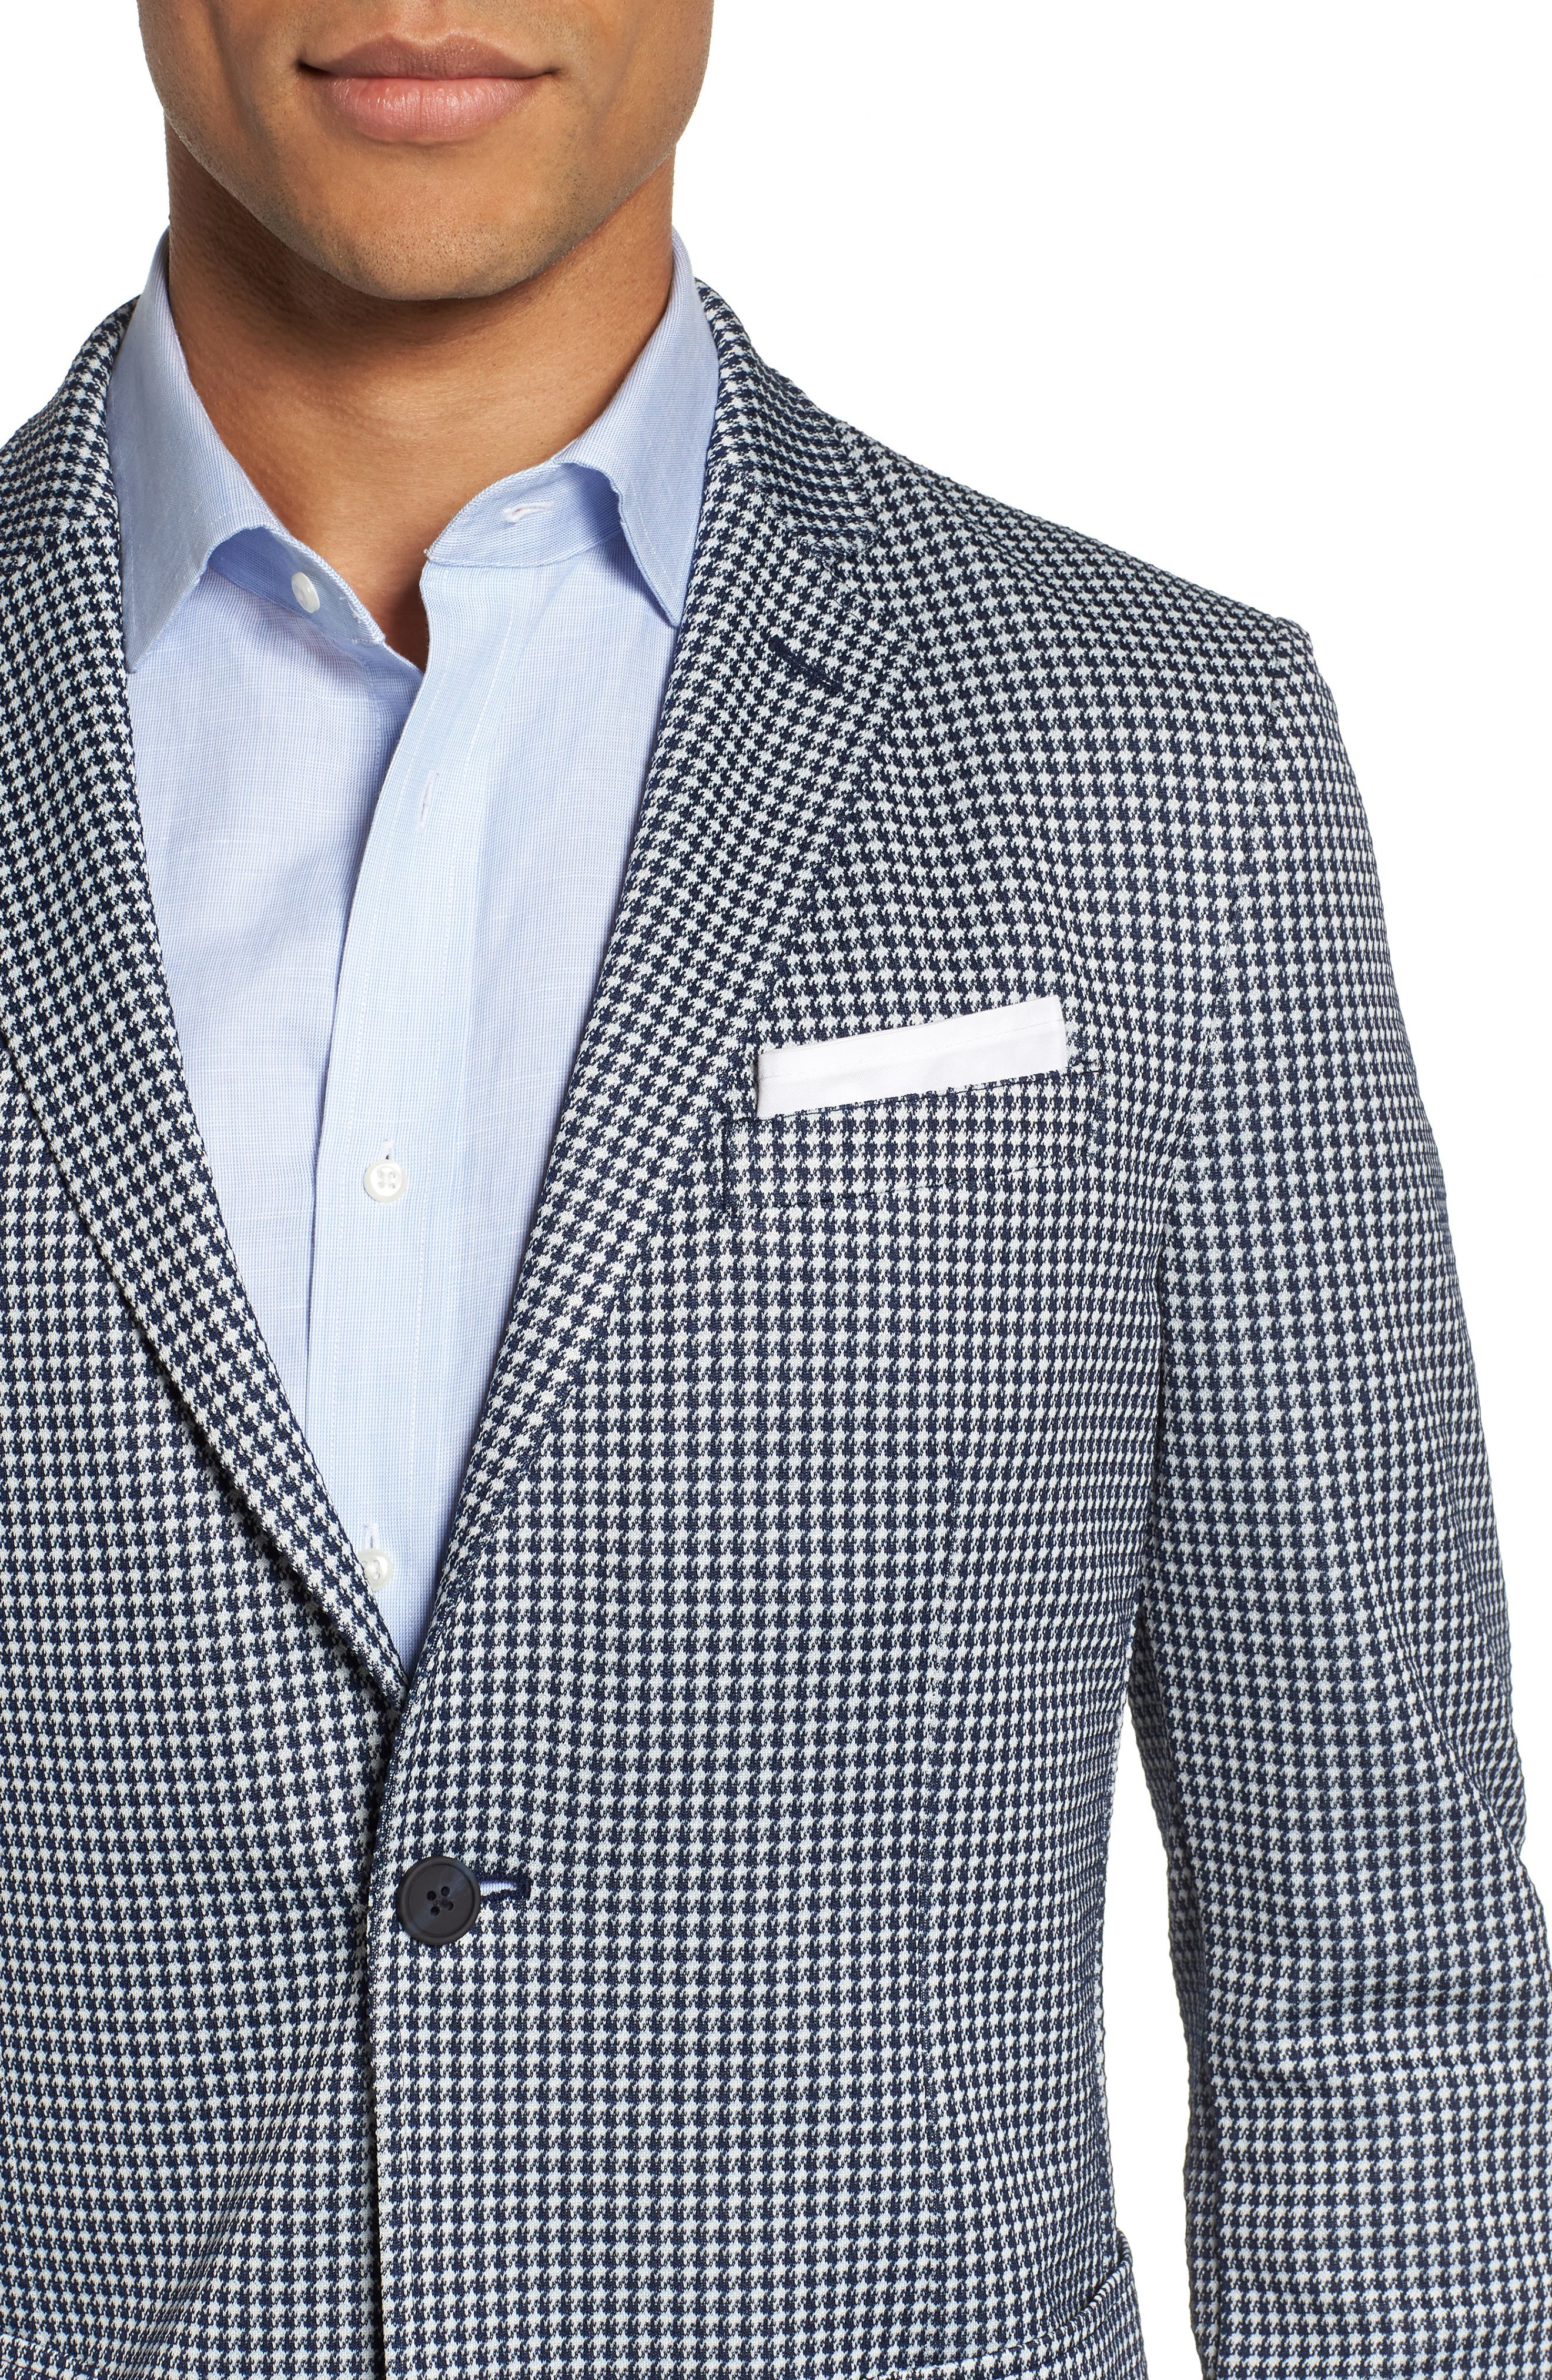 Slim Fit Stretch Houndstooth Sport Coat,                             Alternate thumbnail 4, color,                             410